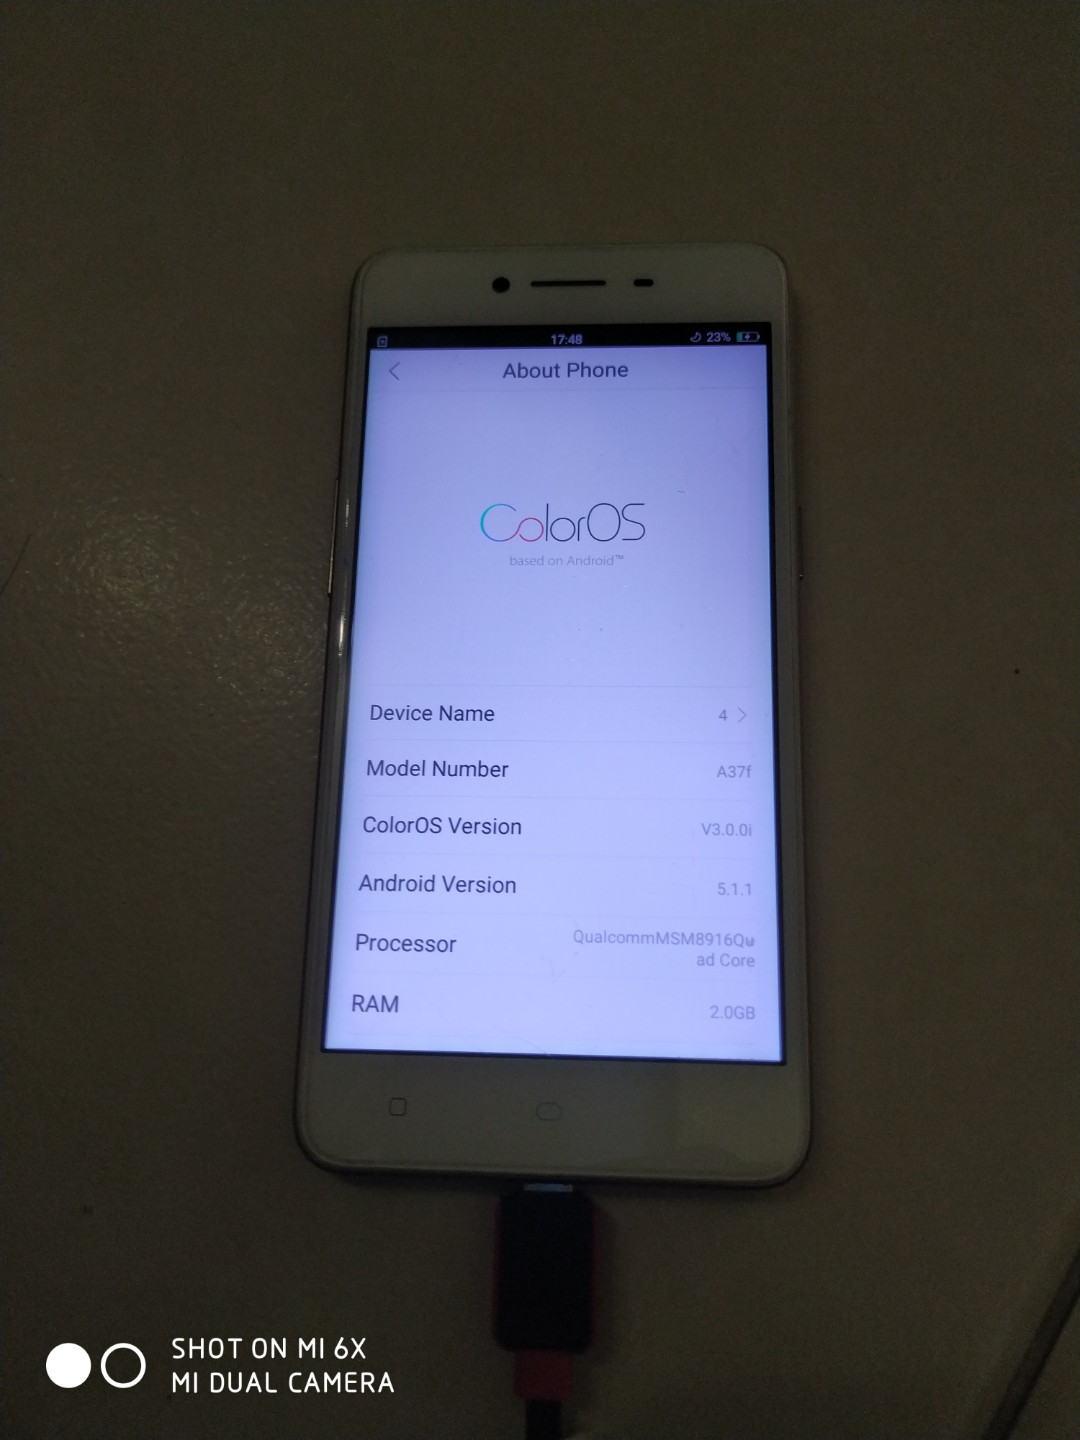 Hp Oppo A371 : Product